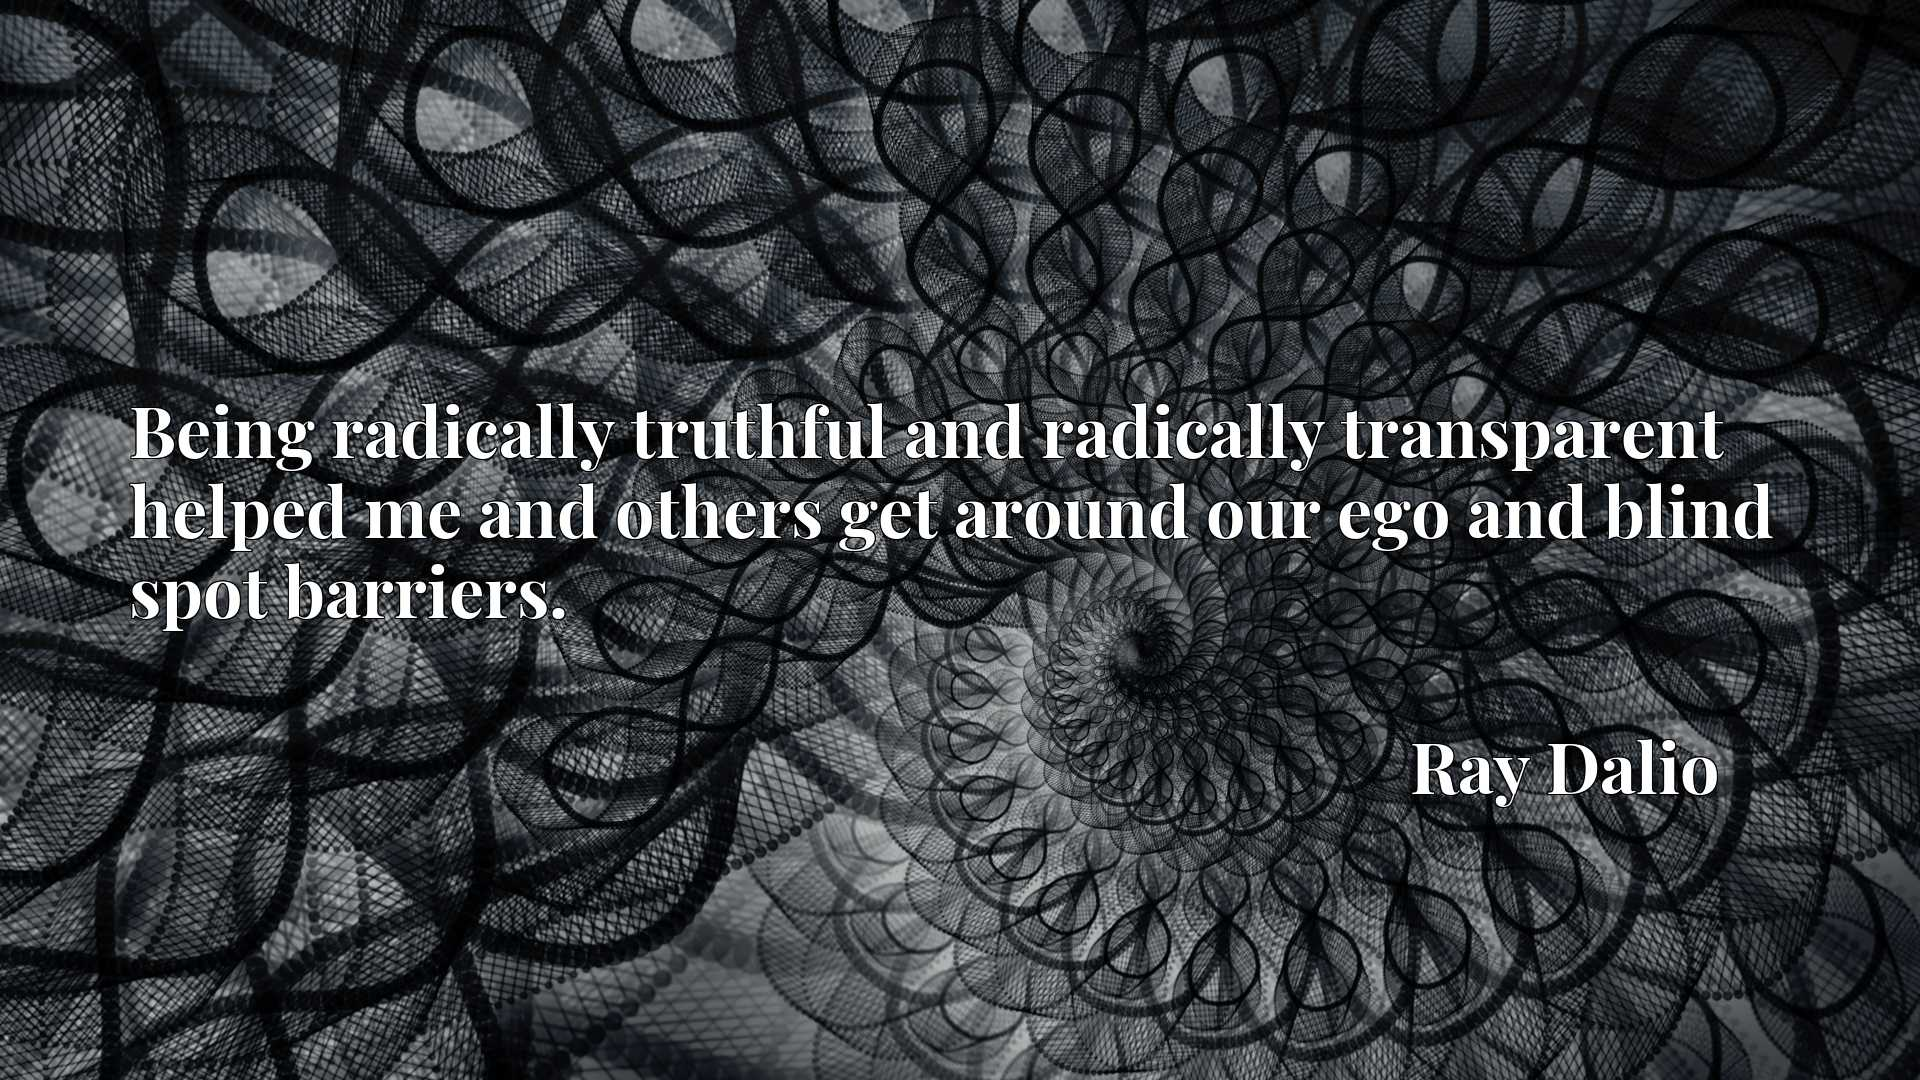 Being radically truthful and radically transparent helped me and others get around our ego and blind spot barriers.